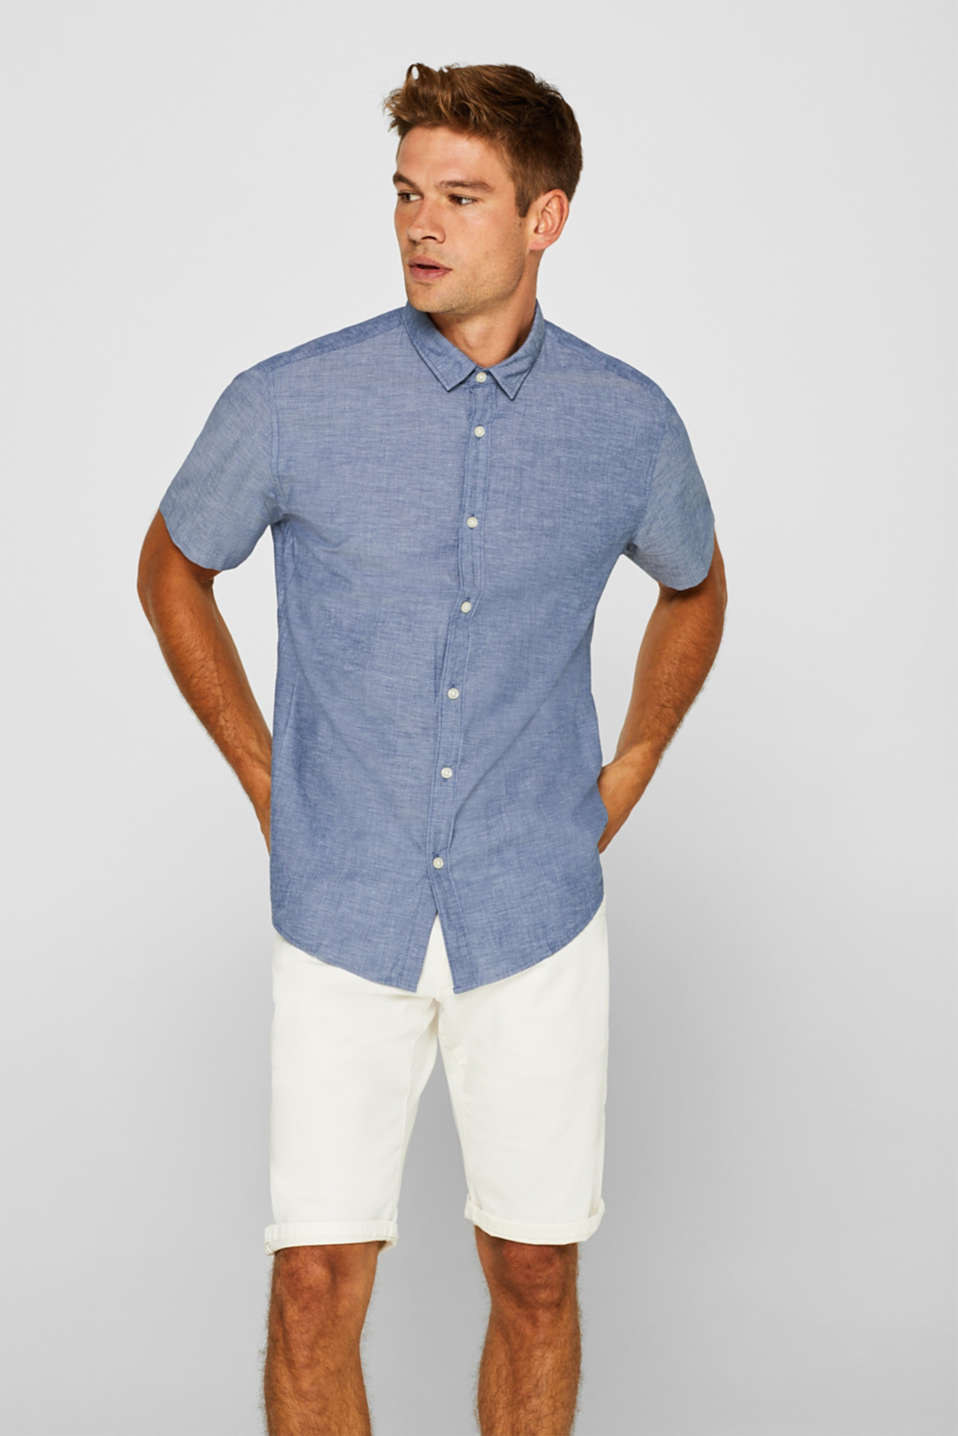 Esprit - Short sleeve shirt, 100% cotton